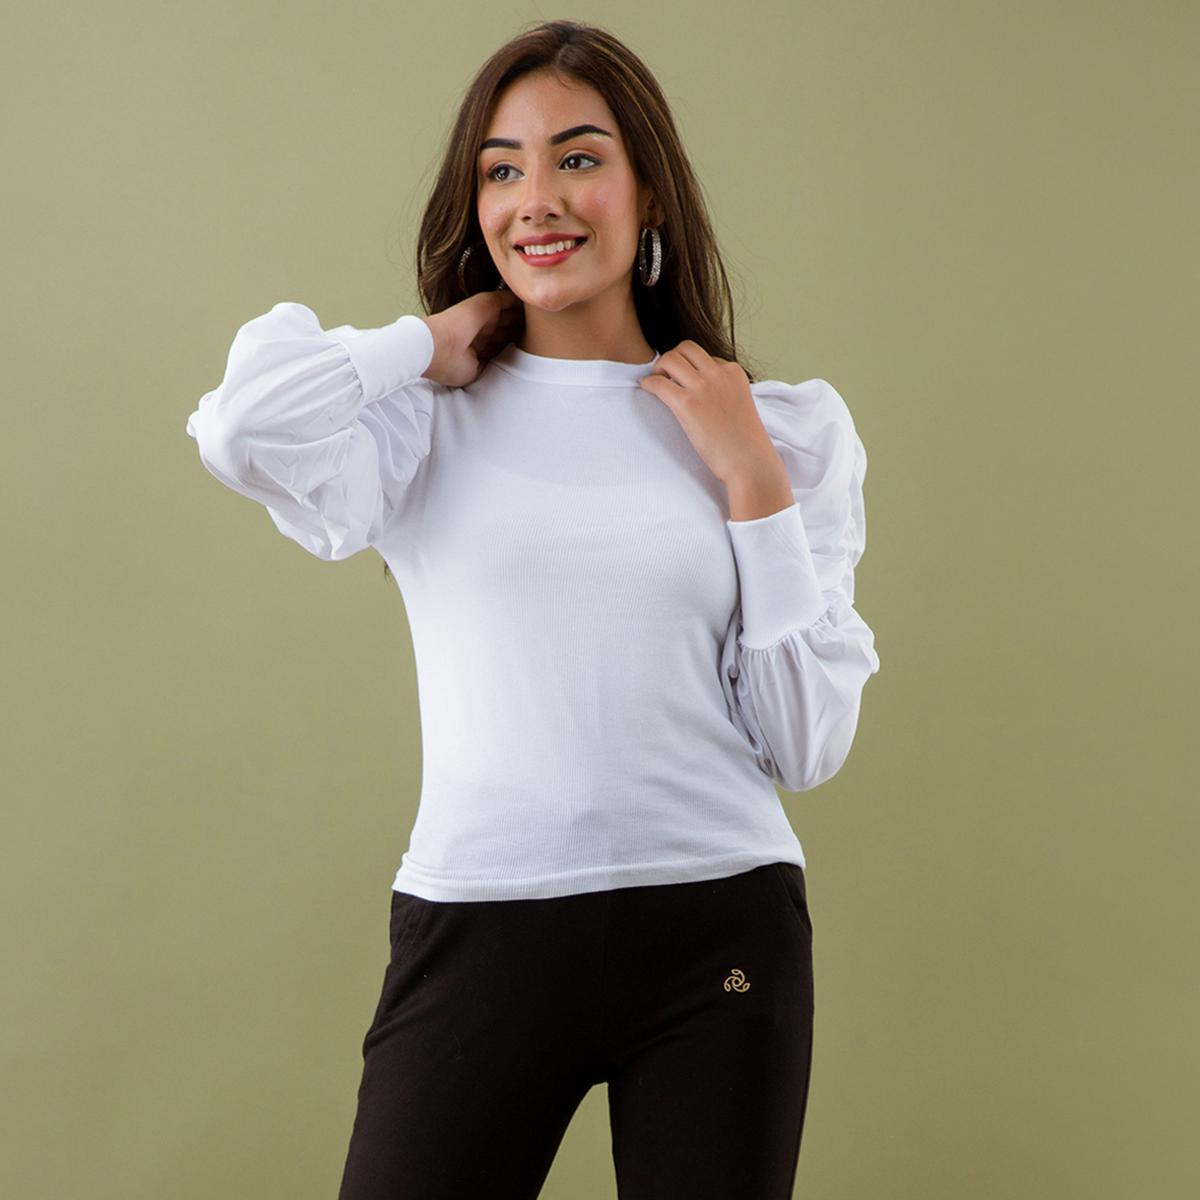 Zyla - White Colored Puff Sleeves High Neck Lycra Top